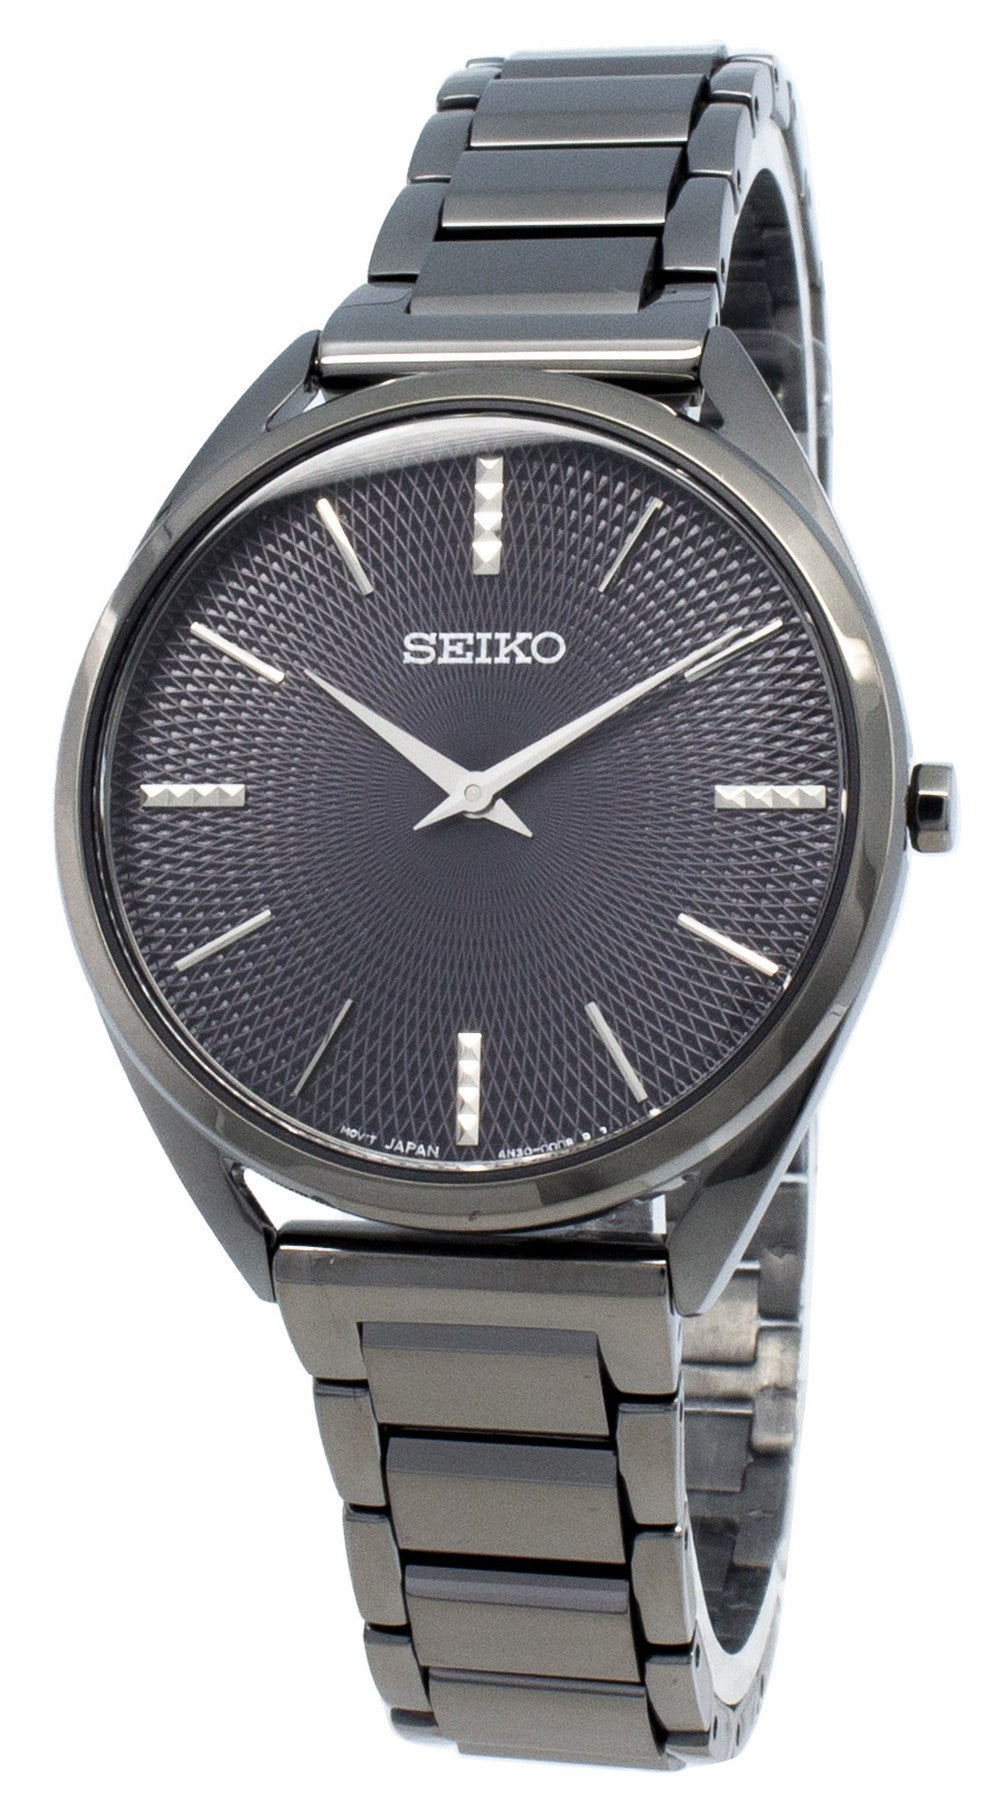 Seiko Conceptual SWR035P SWR035P1 SWR035 Analog Quartz Women's Watch